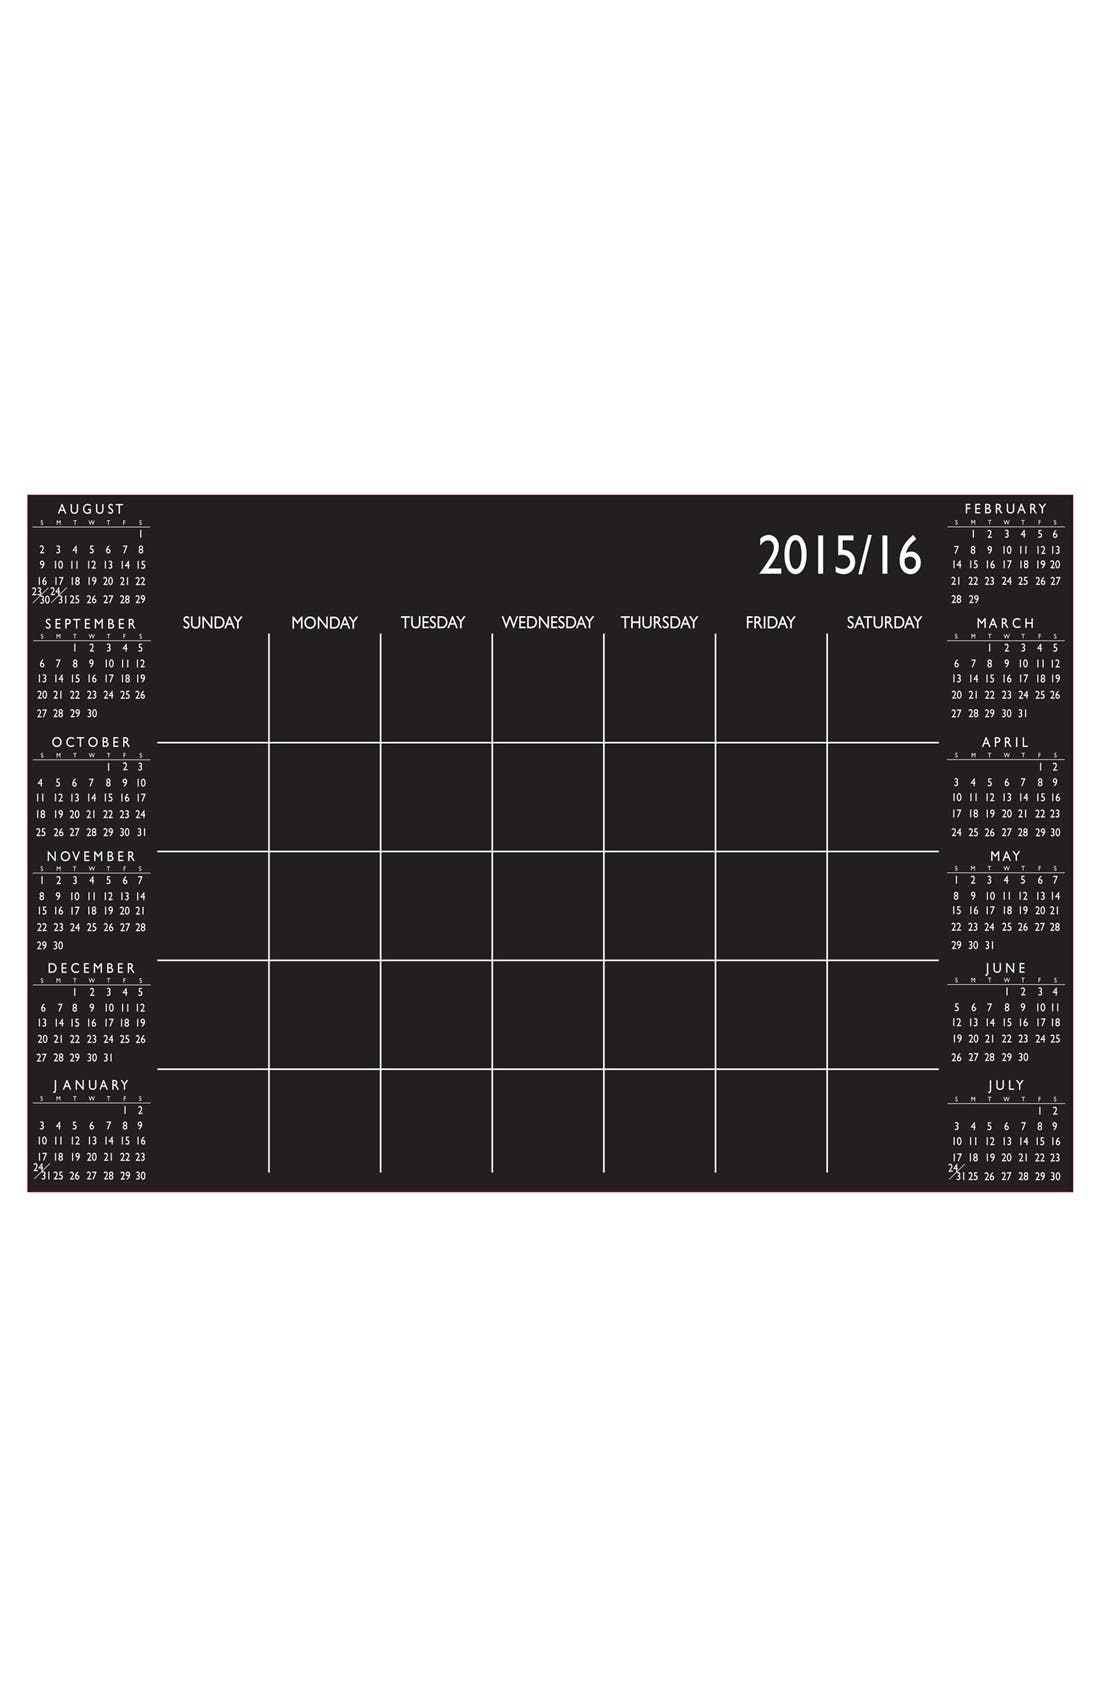 Alternate Image 1 Selected - Wallpops Academic Dry Erase Calendar Wall Decal